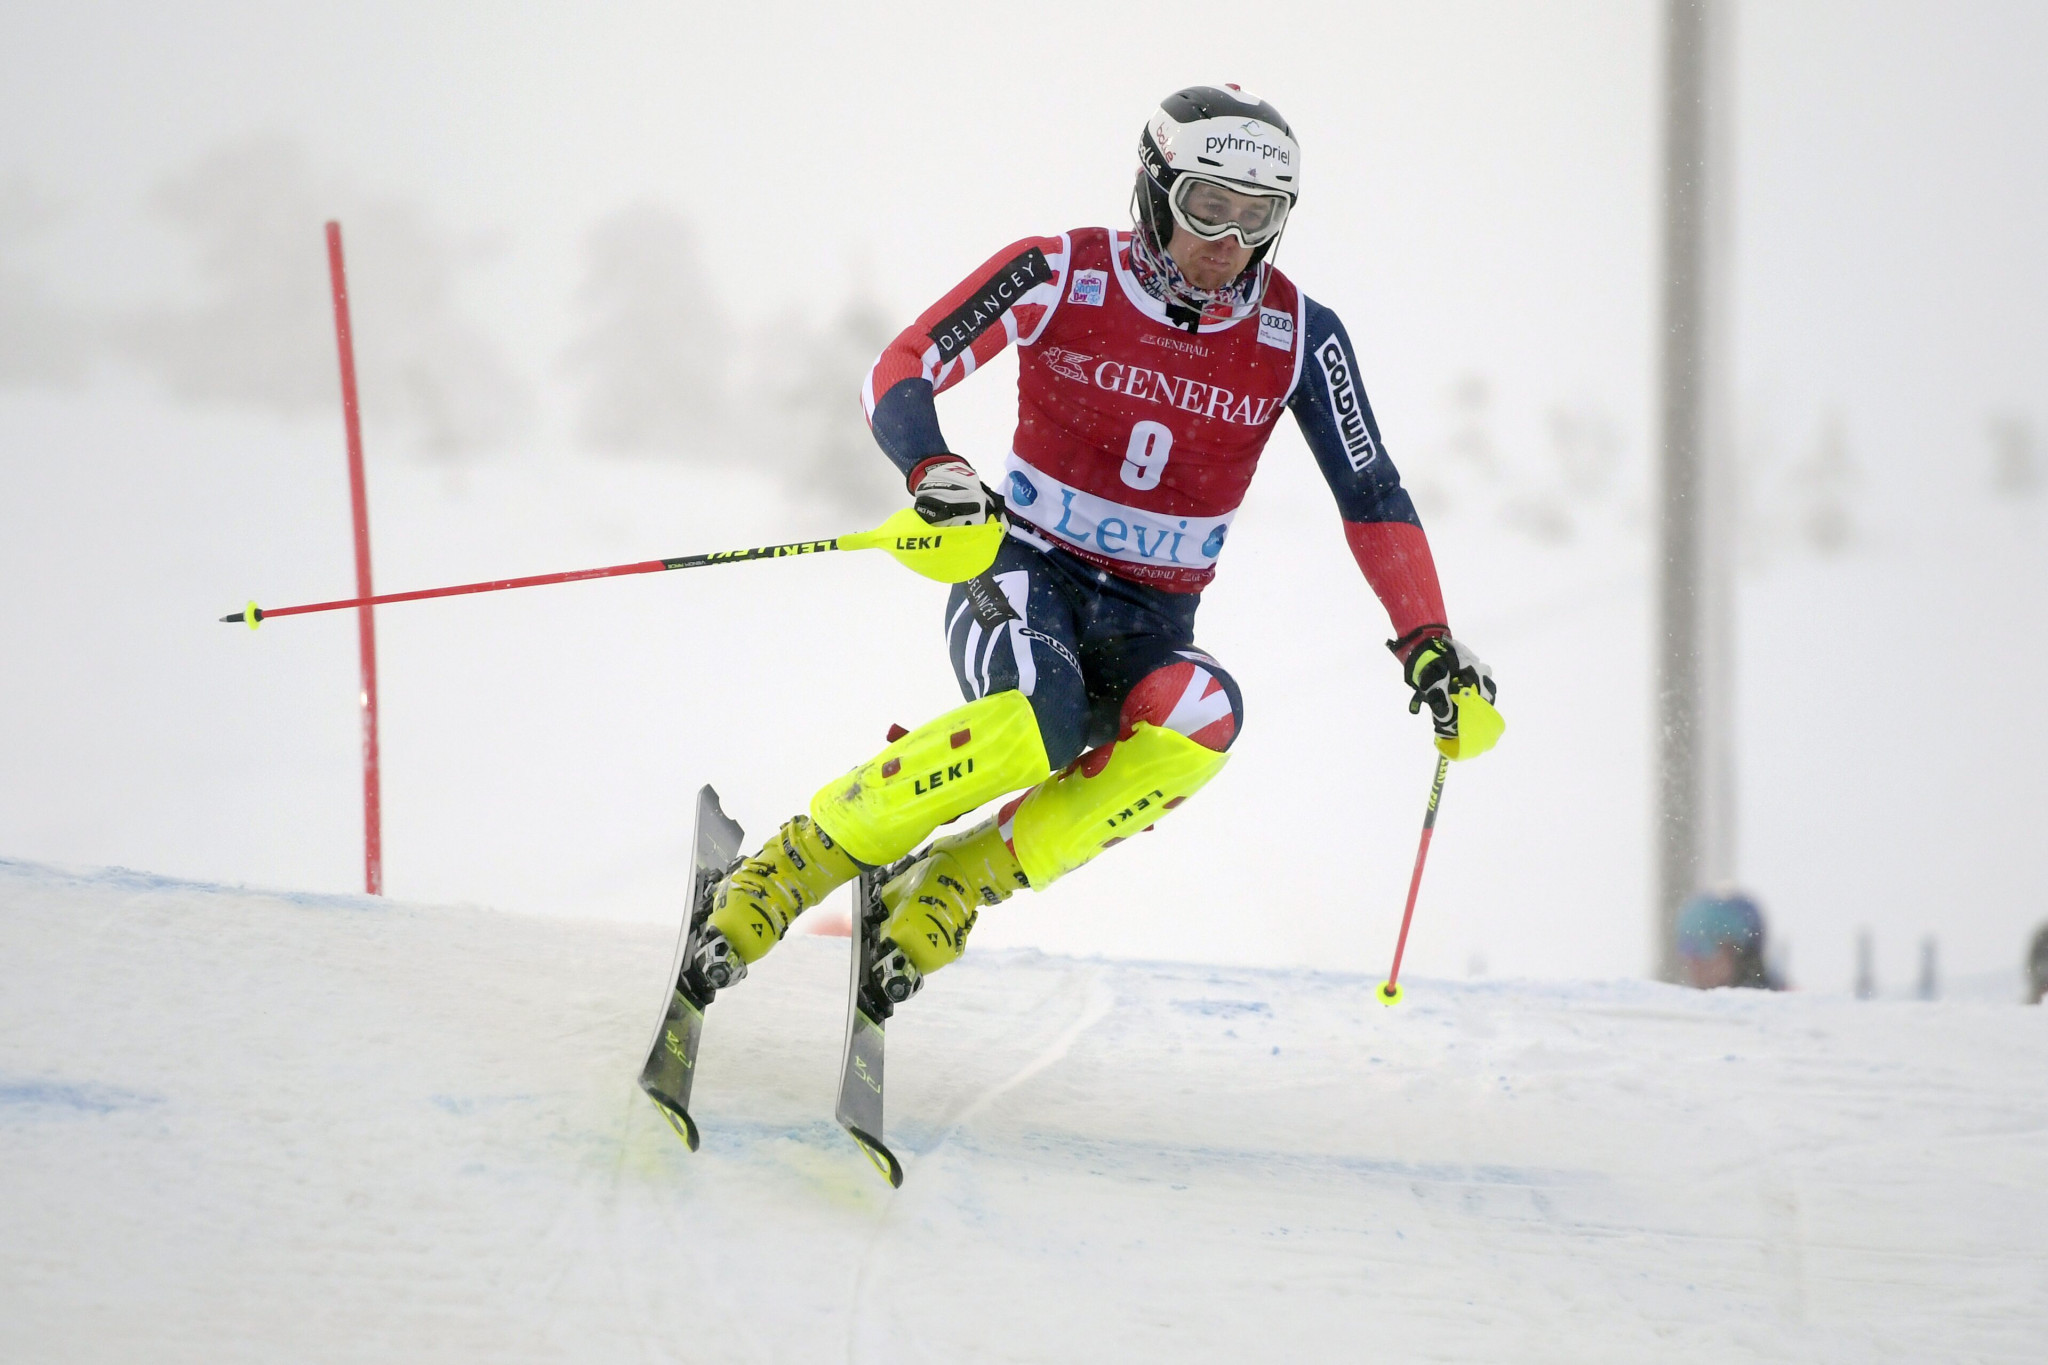 Felix Neureuther wins World Cup slalom as Dave Ryding fails to finish